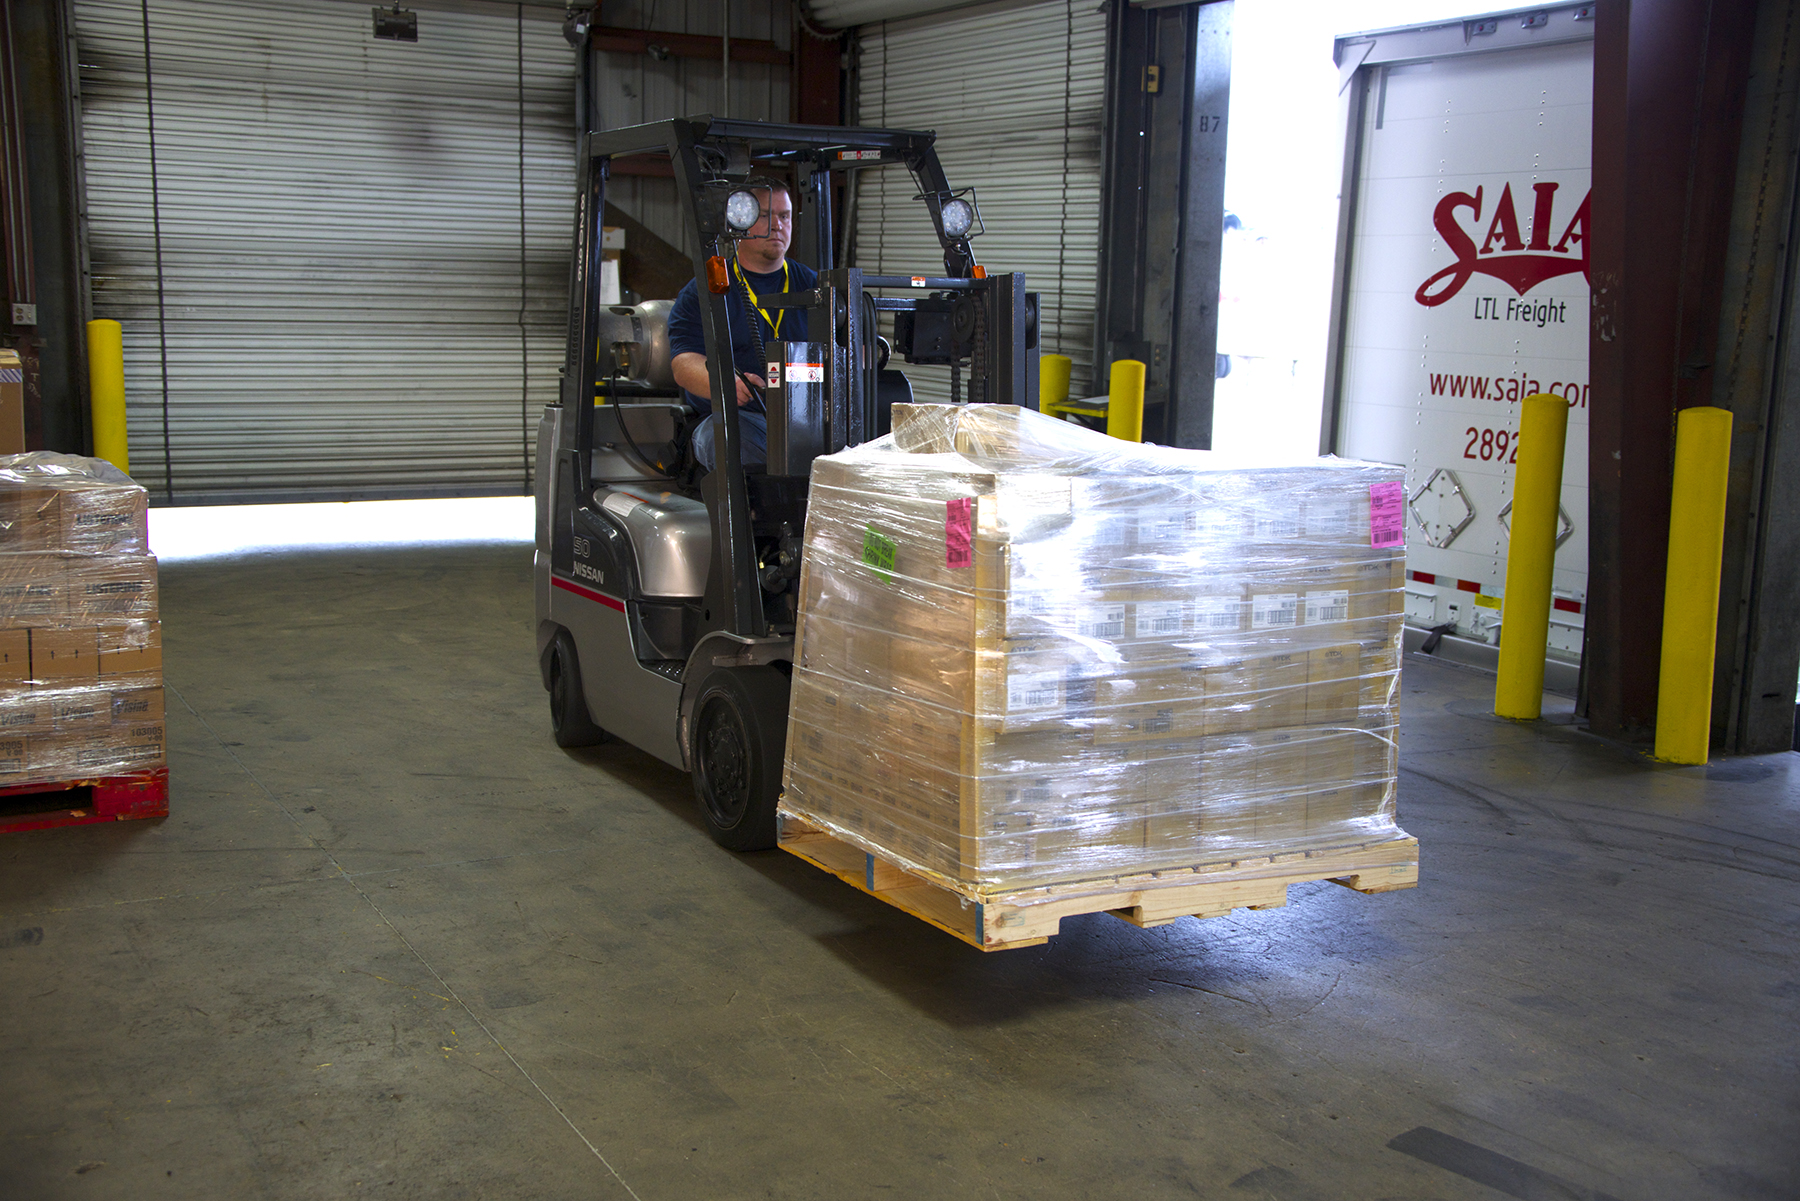 Saia LTL Freight works diligently to safeguard its customers' freight from pickup to delivery.